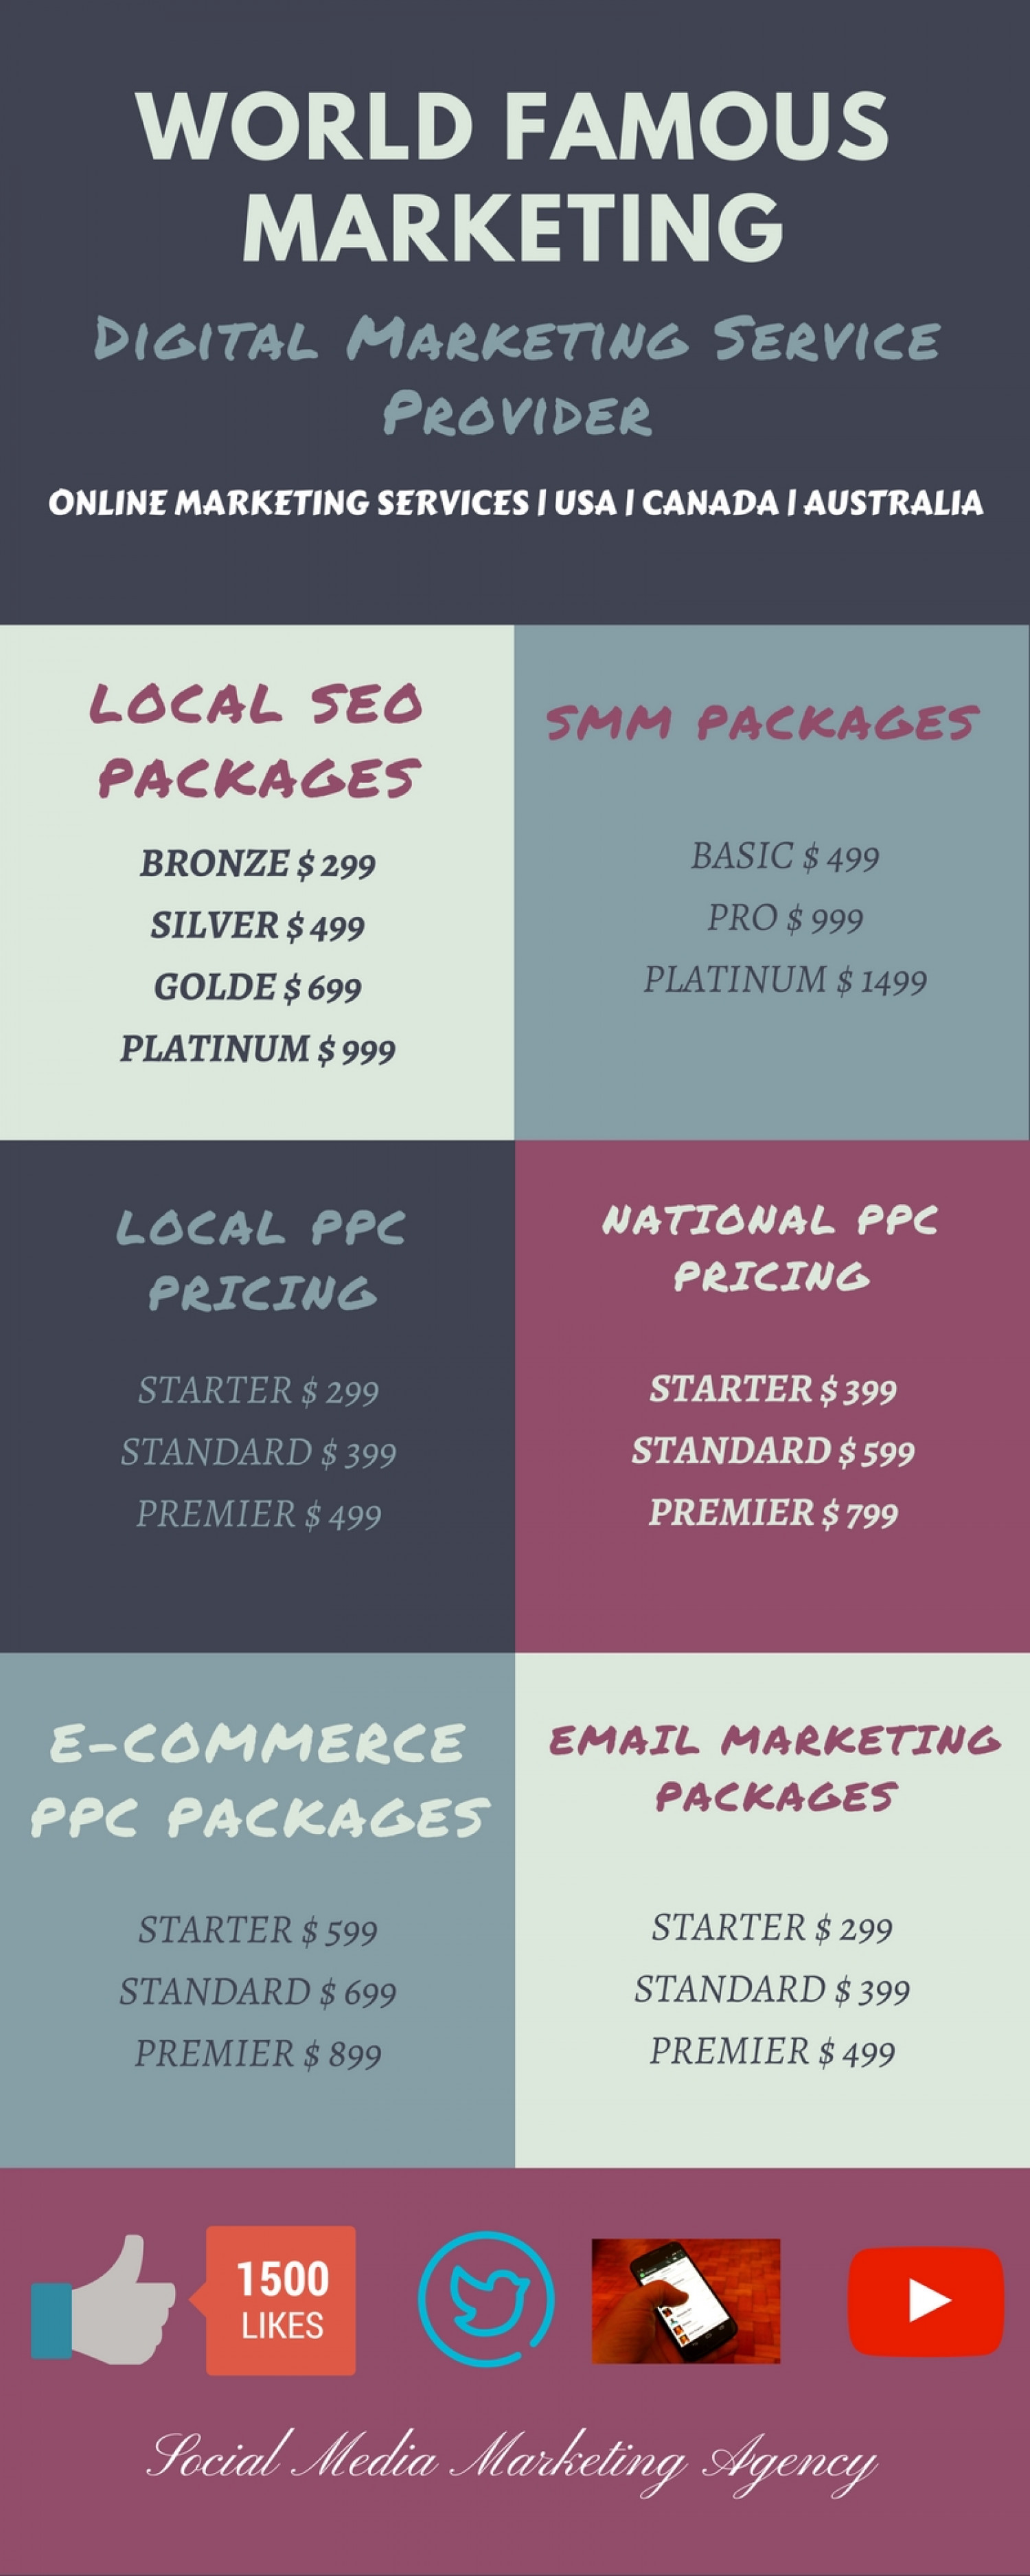 Social Media Marketing Agency | World Famous Marketing | Toronto Infographic